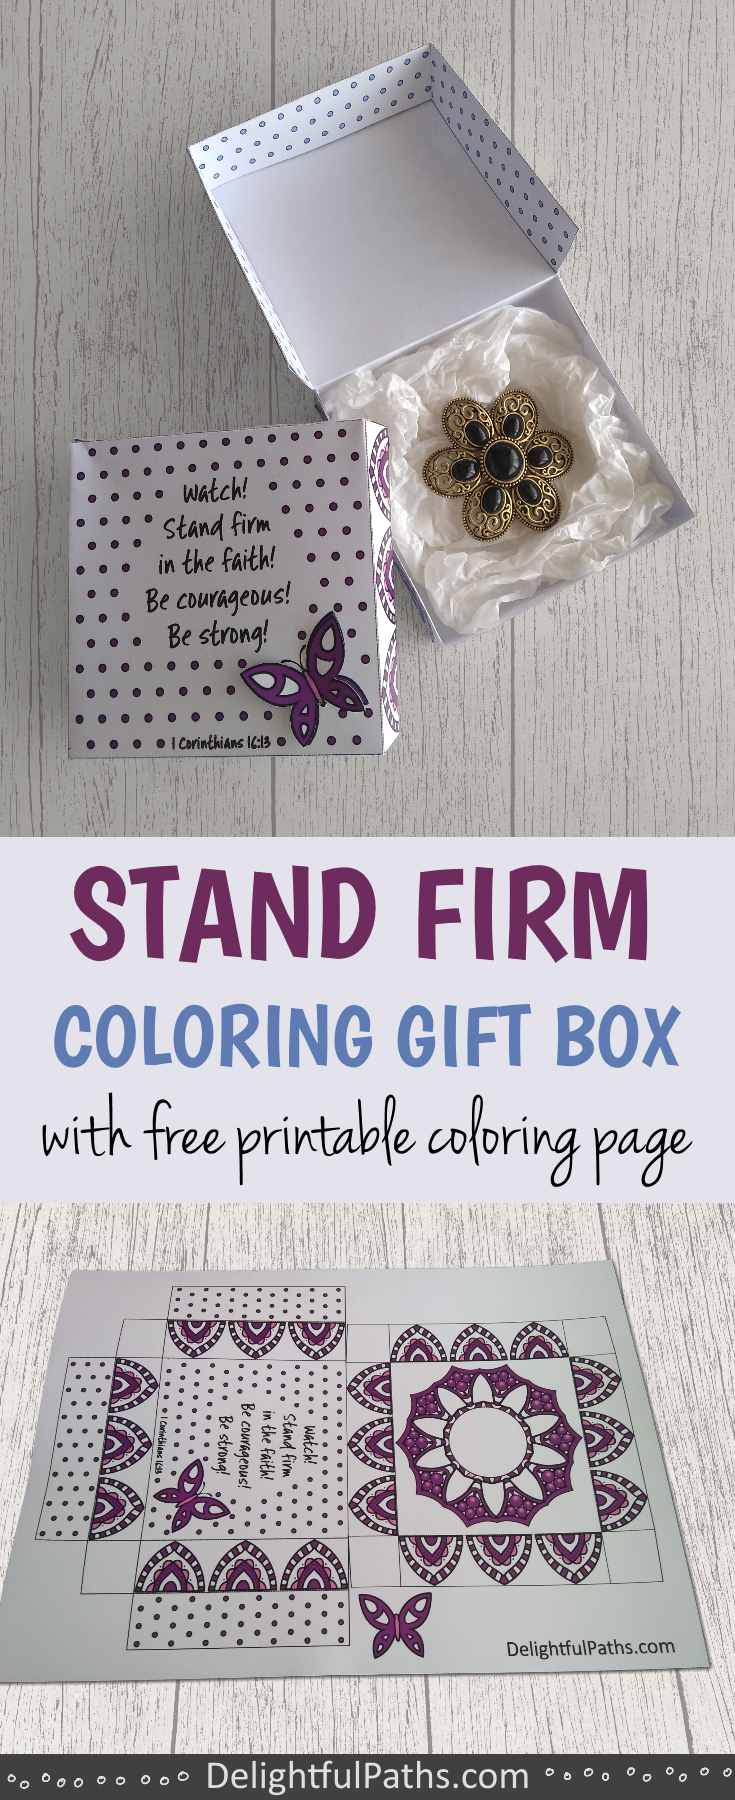 Stand Firm Coloring Craft Gift Box with free template - DelightfulPaths